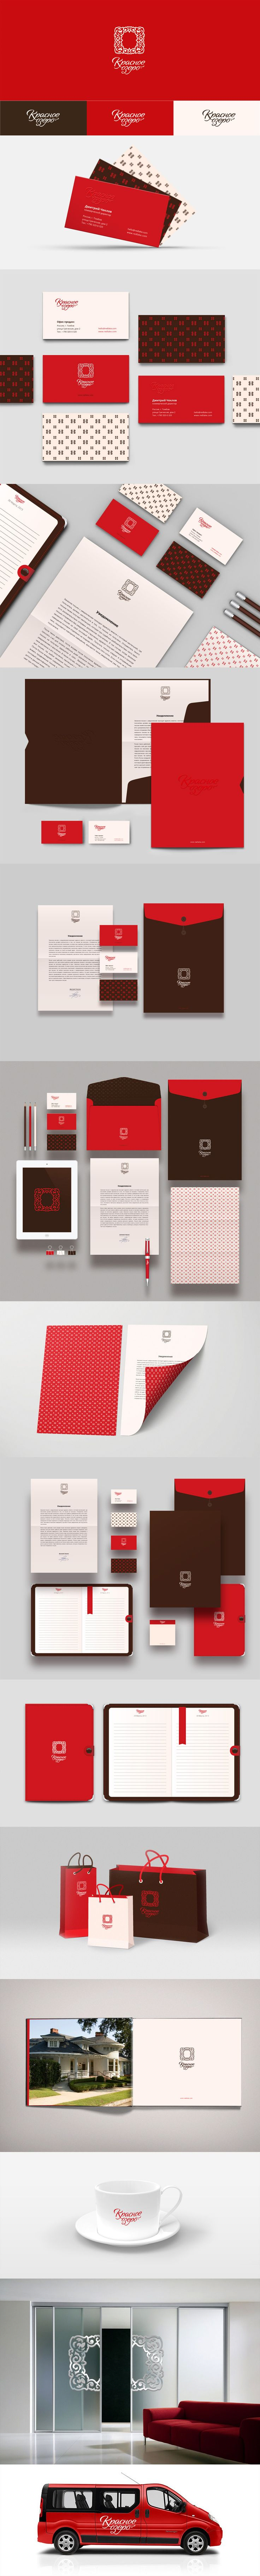 RedLake #identity #packaging #branding #marketing PD